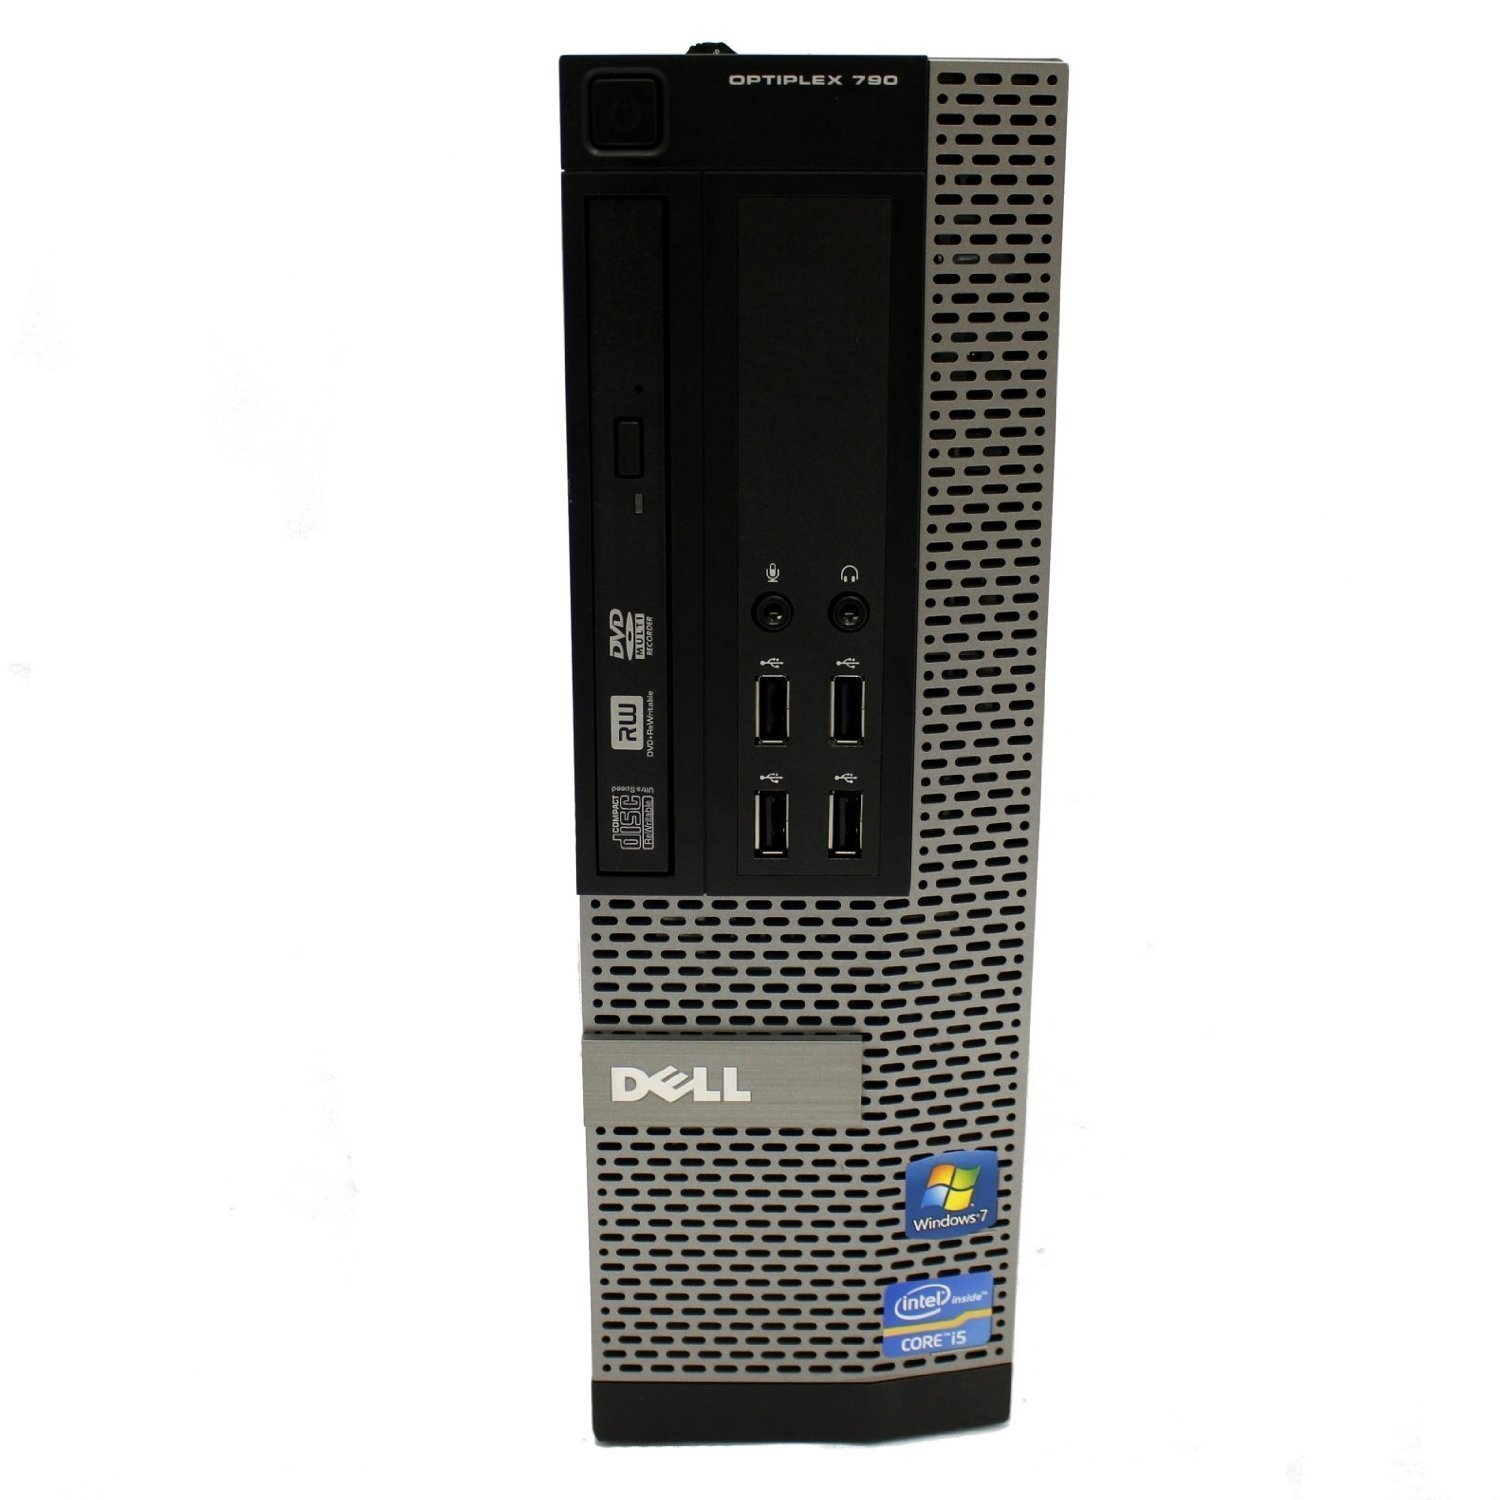 Dell OptiPlex 790 SFF Desktop PC - Intel Core i3-2120 3.3GHz 4GB 250GB DVDRW Windows 7 Pro (Certified Refurbished)